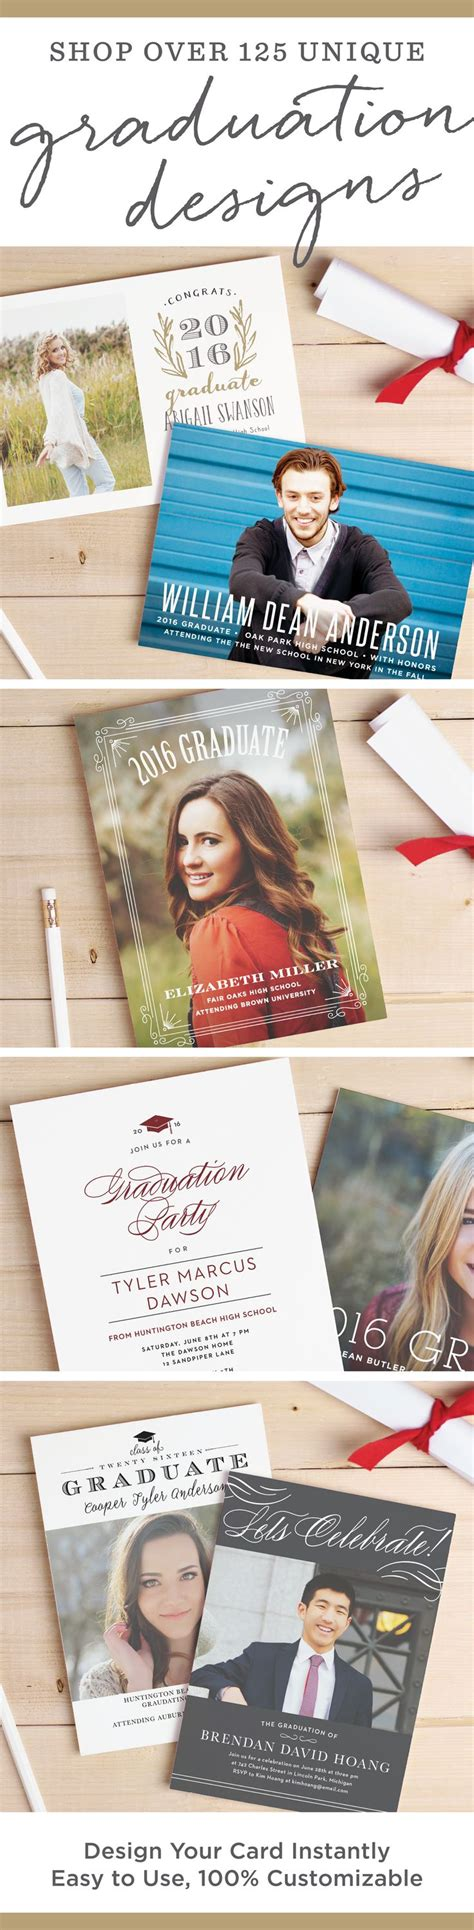 free invitation cards for graduation party new templates free